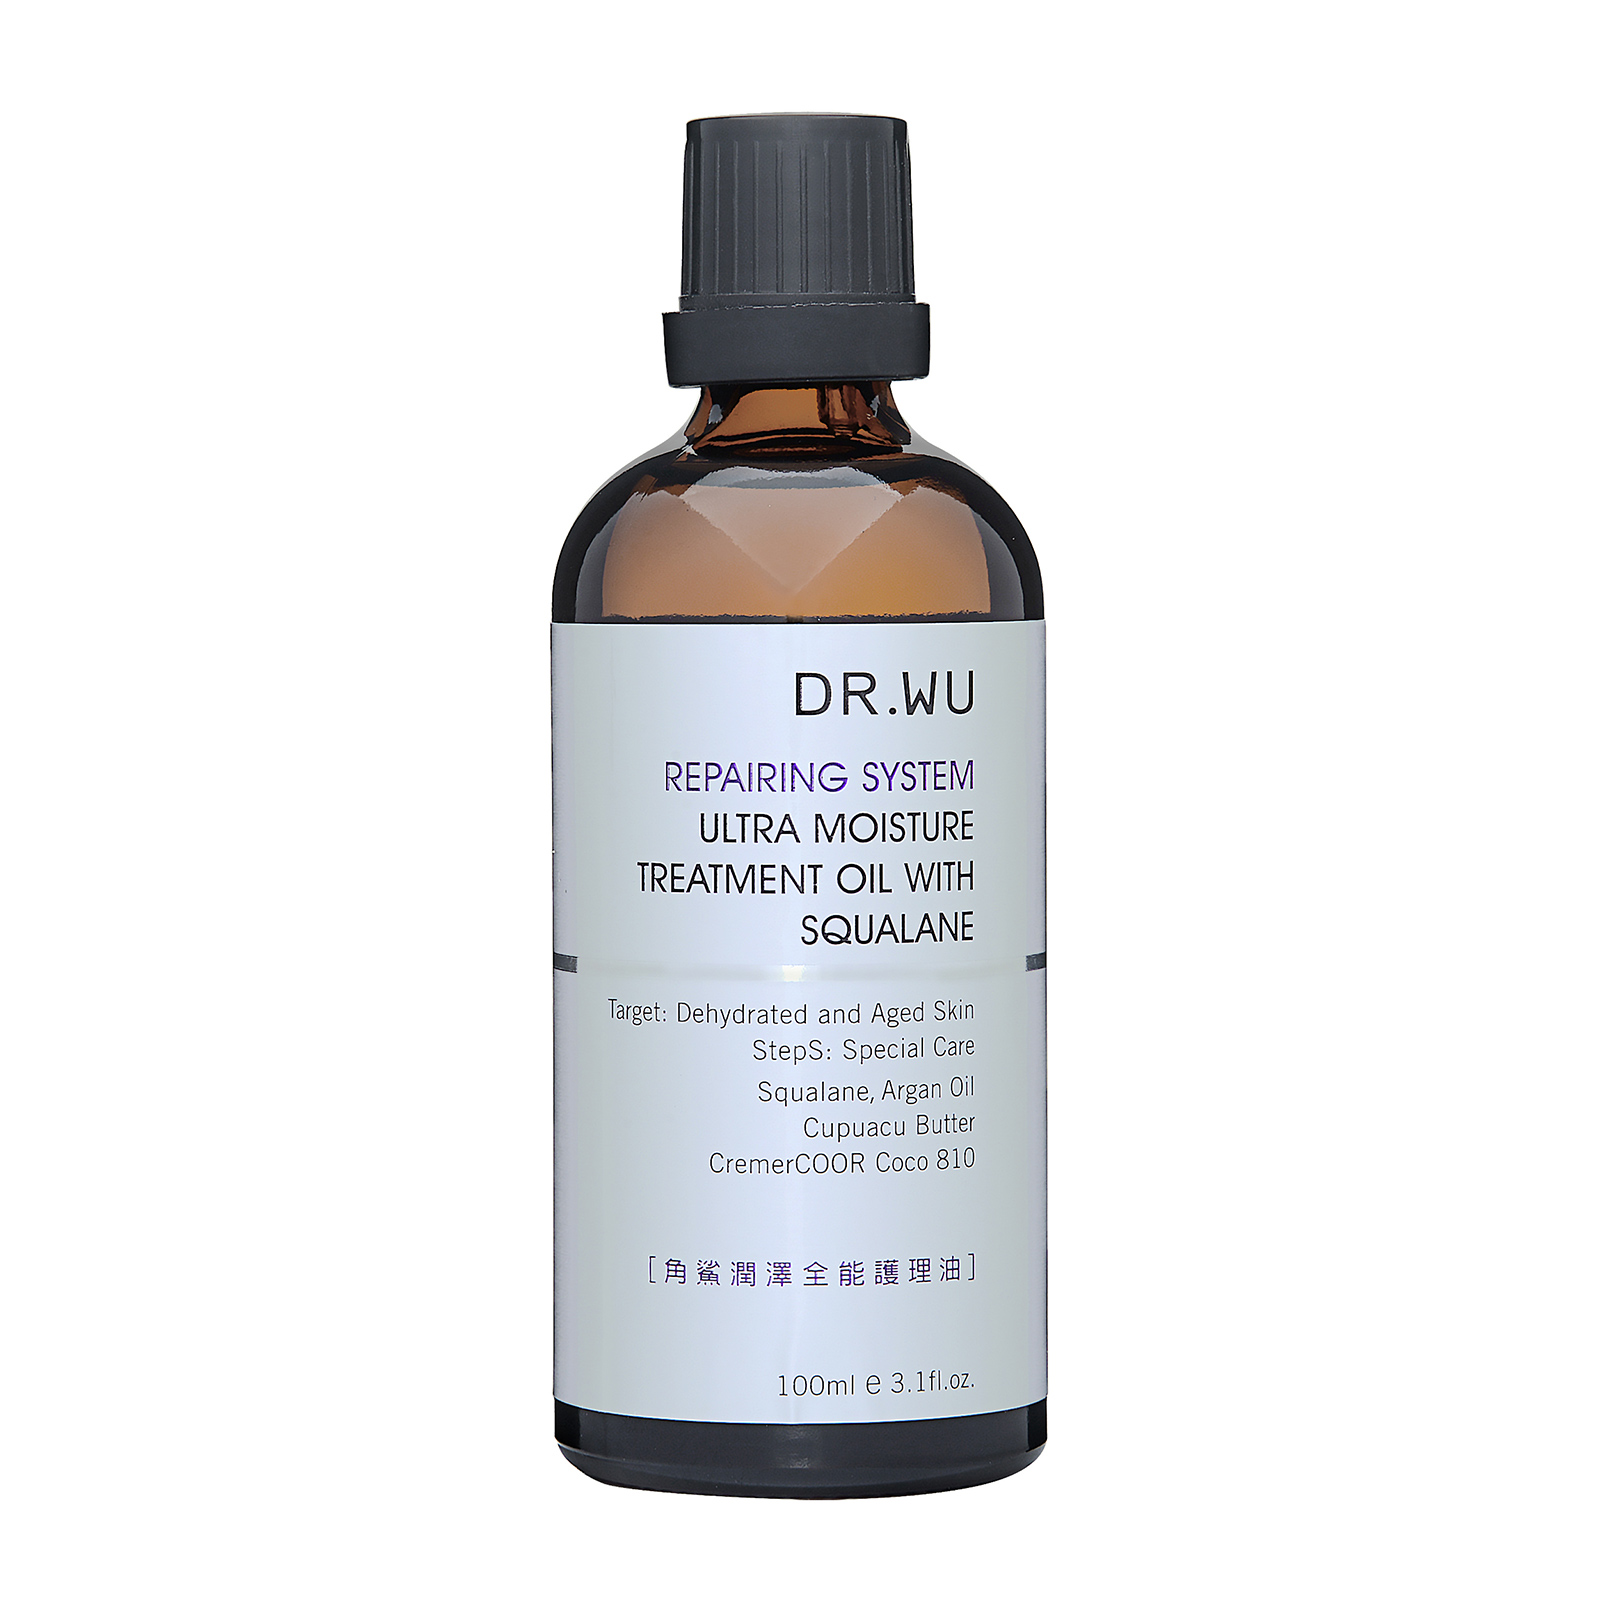 DR. WU Repairing System  Ultra Moisture Treatment Oil With Squalane 3.1oz, 100ml